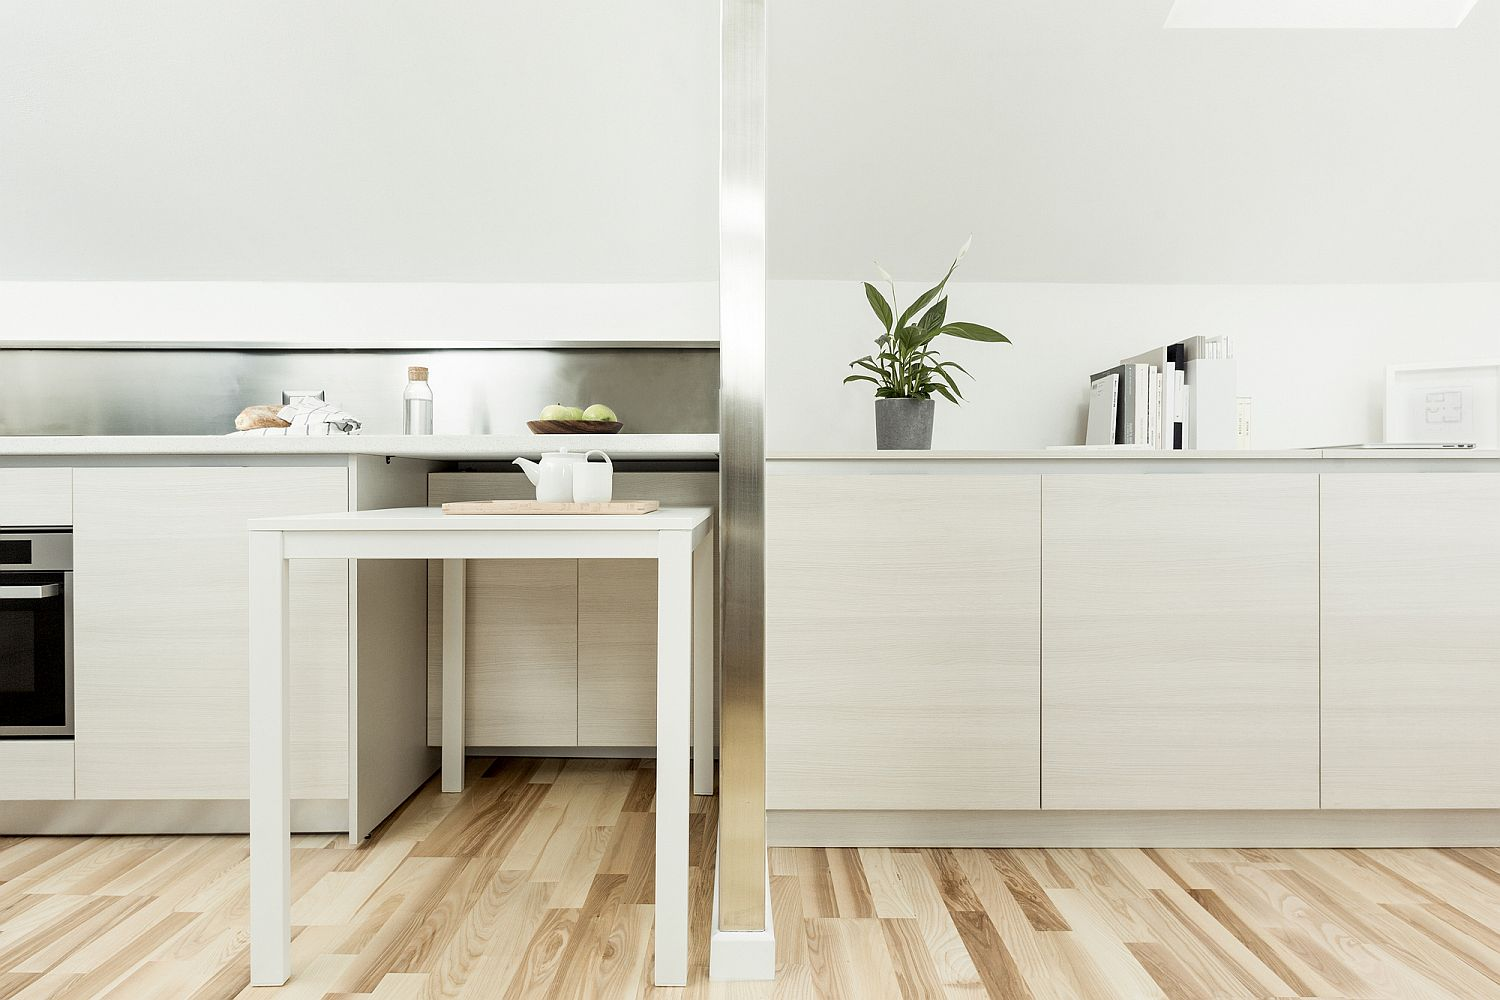 1559229132 880 compact white and wood apartment in milan maximizes space in style - Compact White and Wood Apartment in Milan Maximizes Space in Style